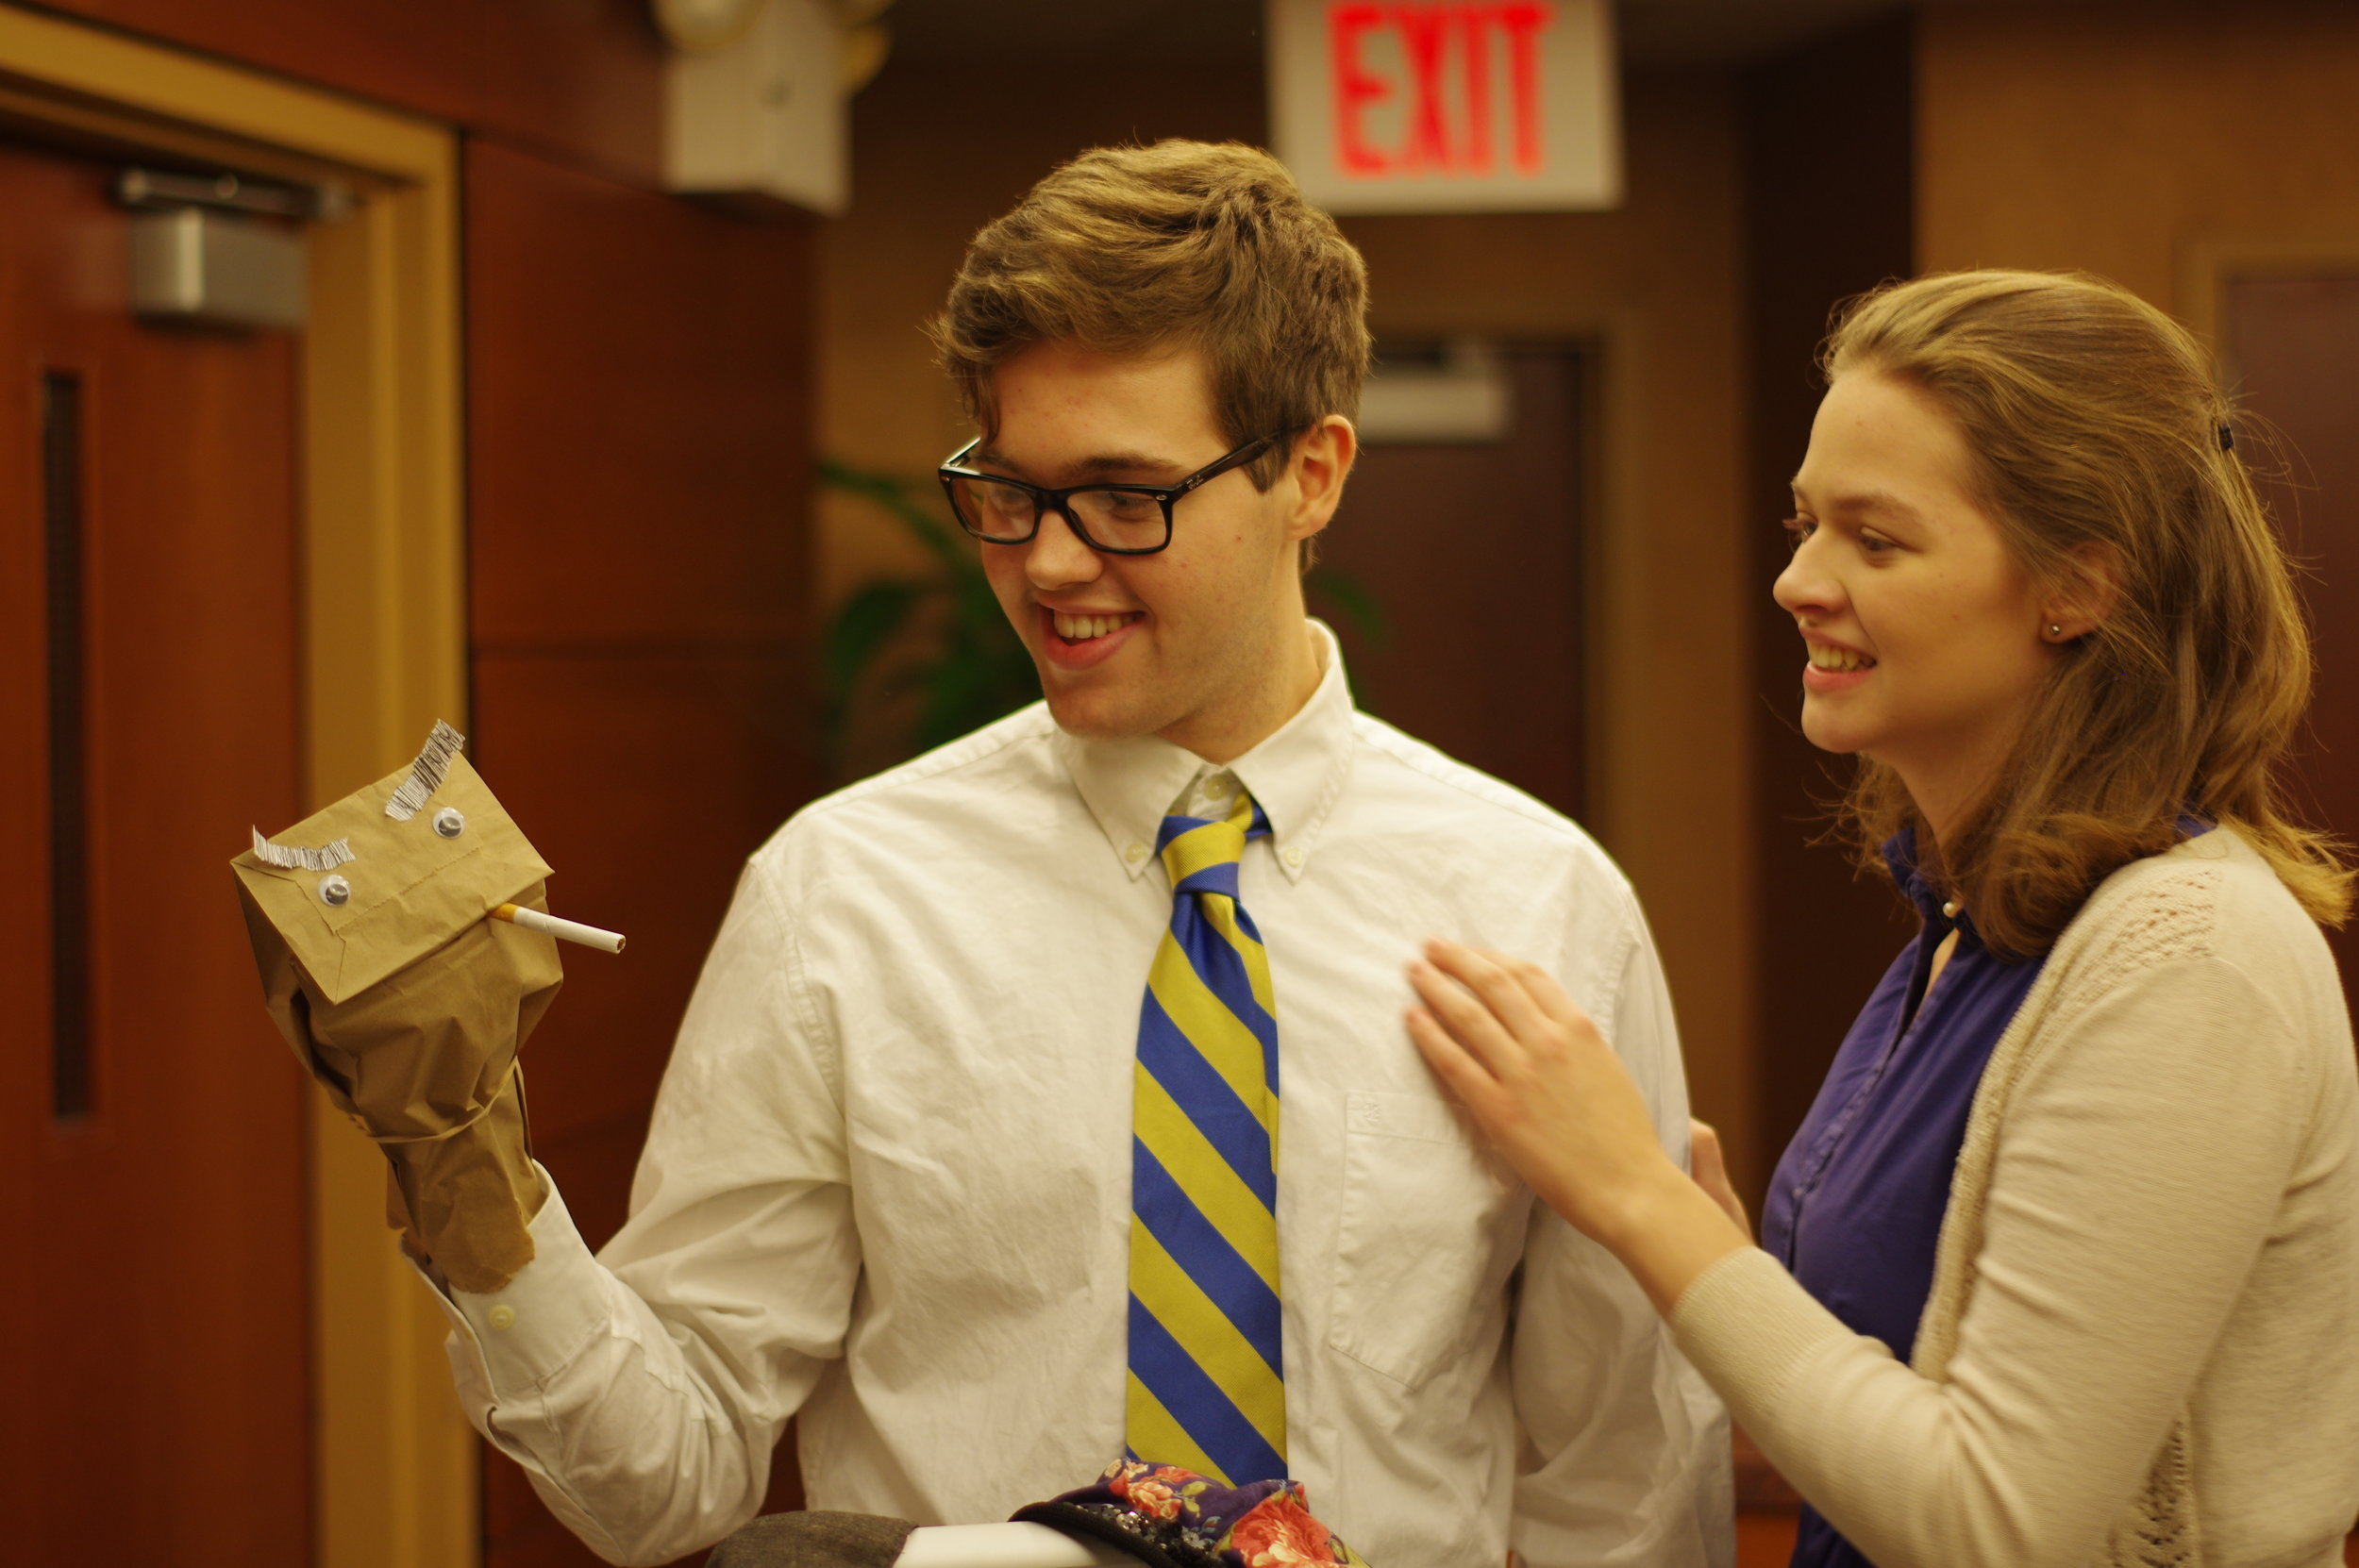 "(L to R) Nick Spink and Emily Conlon in ""Mom, I Want to Be a Chemist"" by Ryan Cook, Derek Crosby, and Jack McManus."